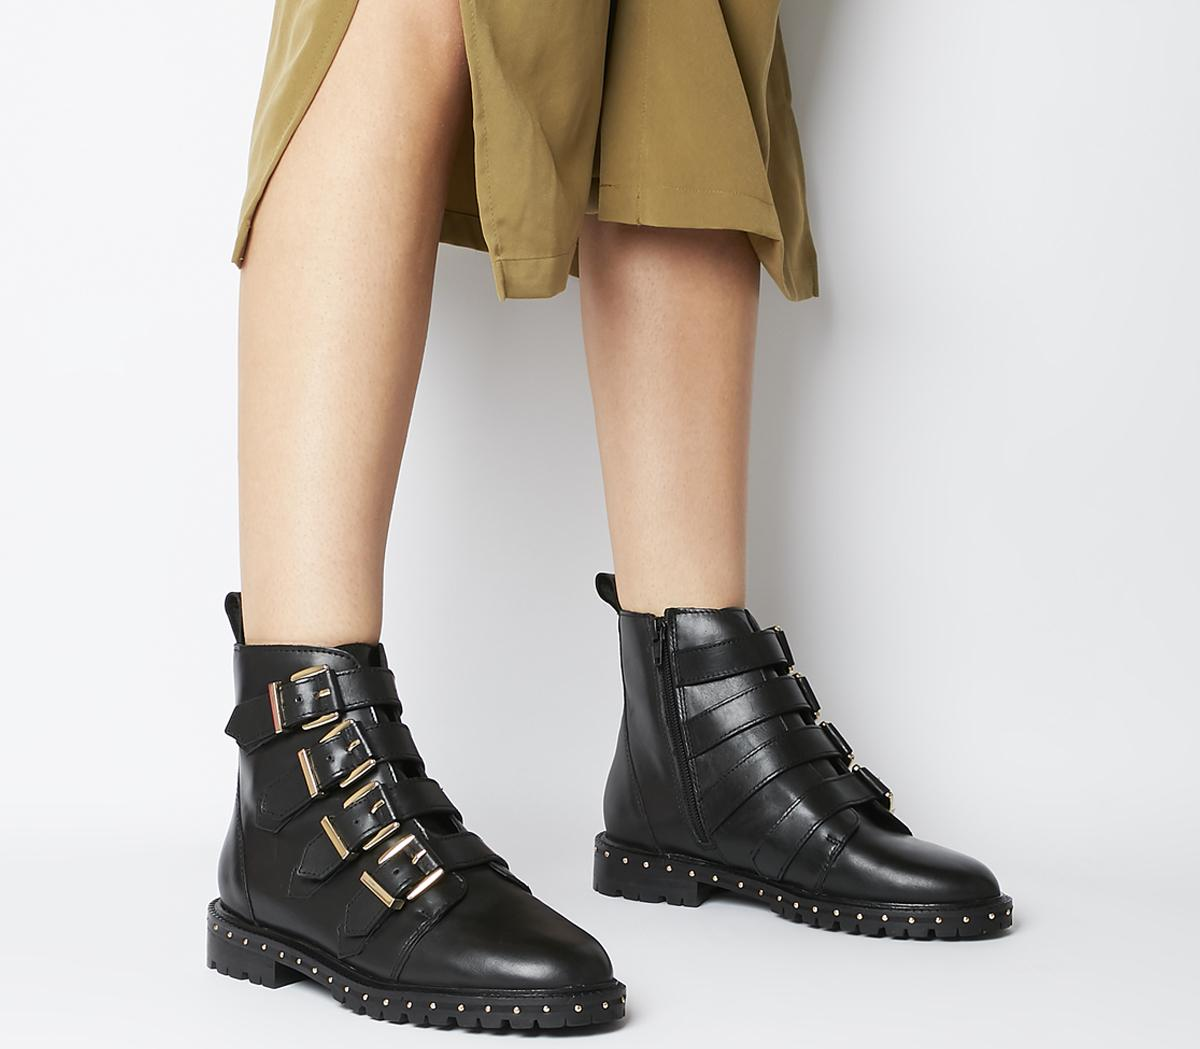 Athens Multi Strap Flat Boots